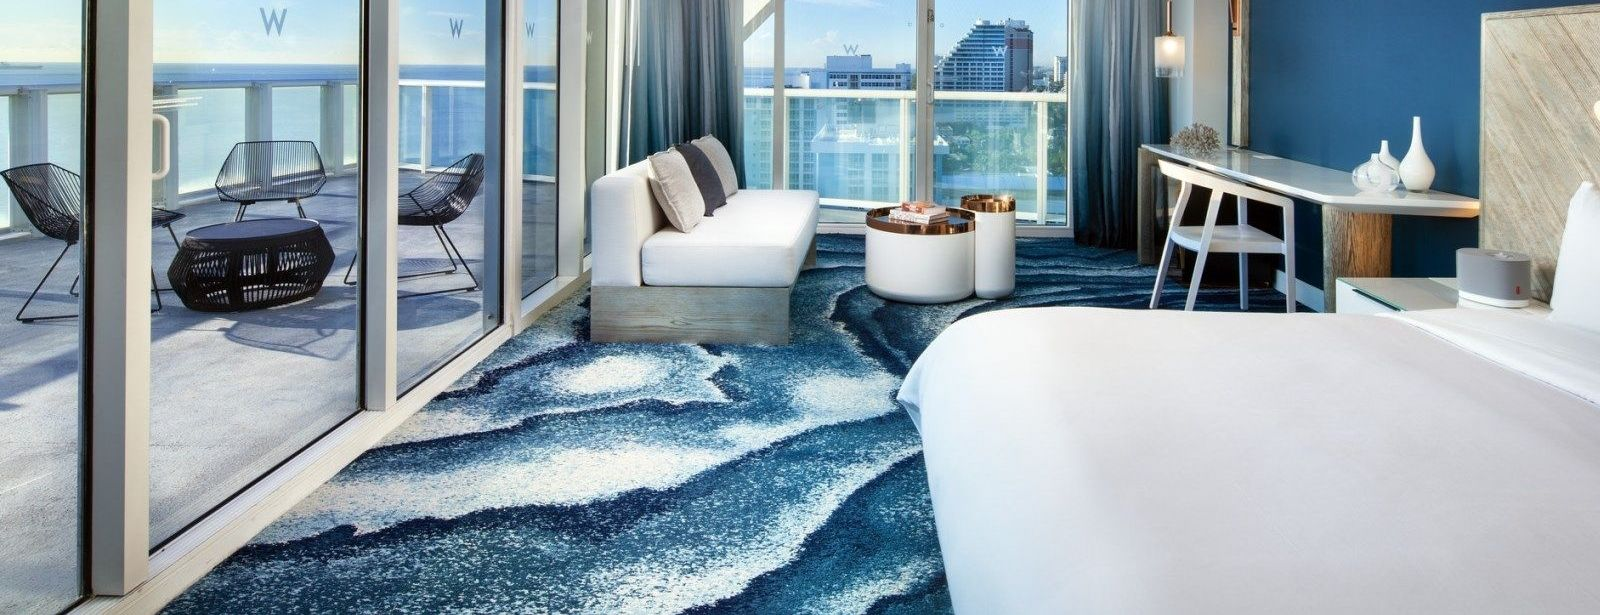 Sensational Oceanfront Studio Room | W Fort Lauderdale